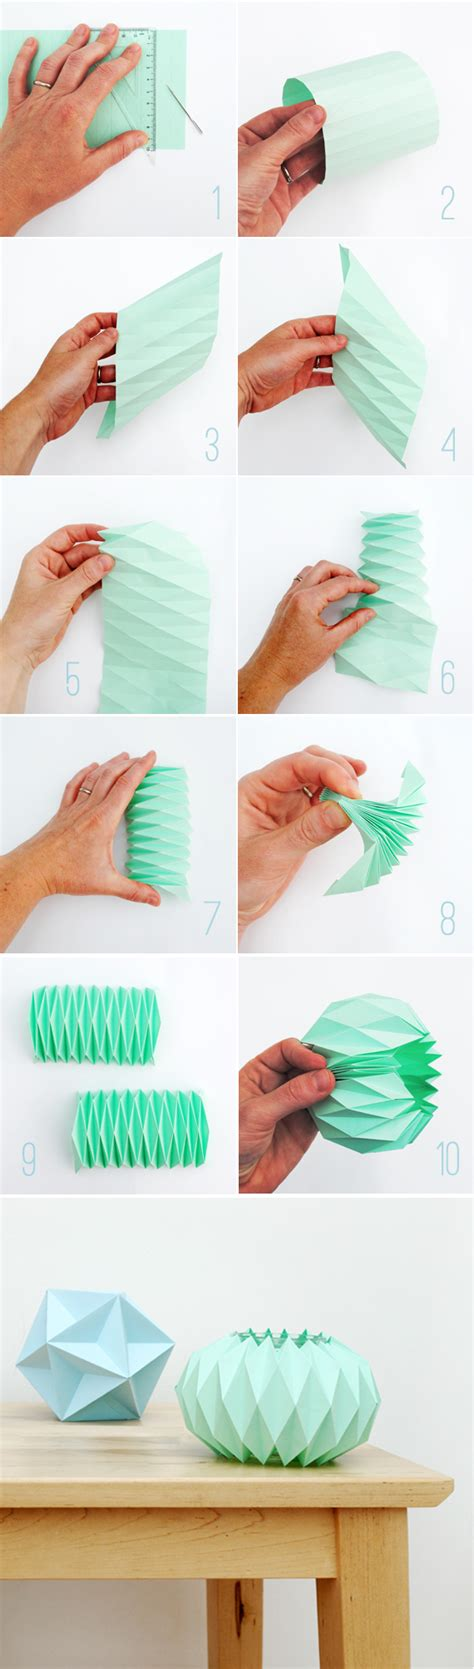 How To Make A Paper Folder At Home - diy accordion paper folding candle holder pictures photos